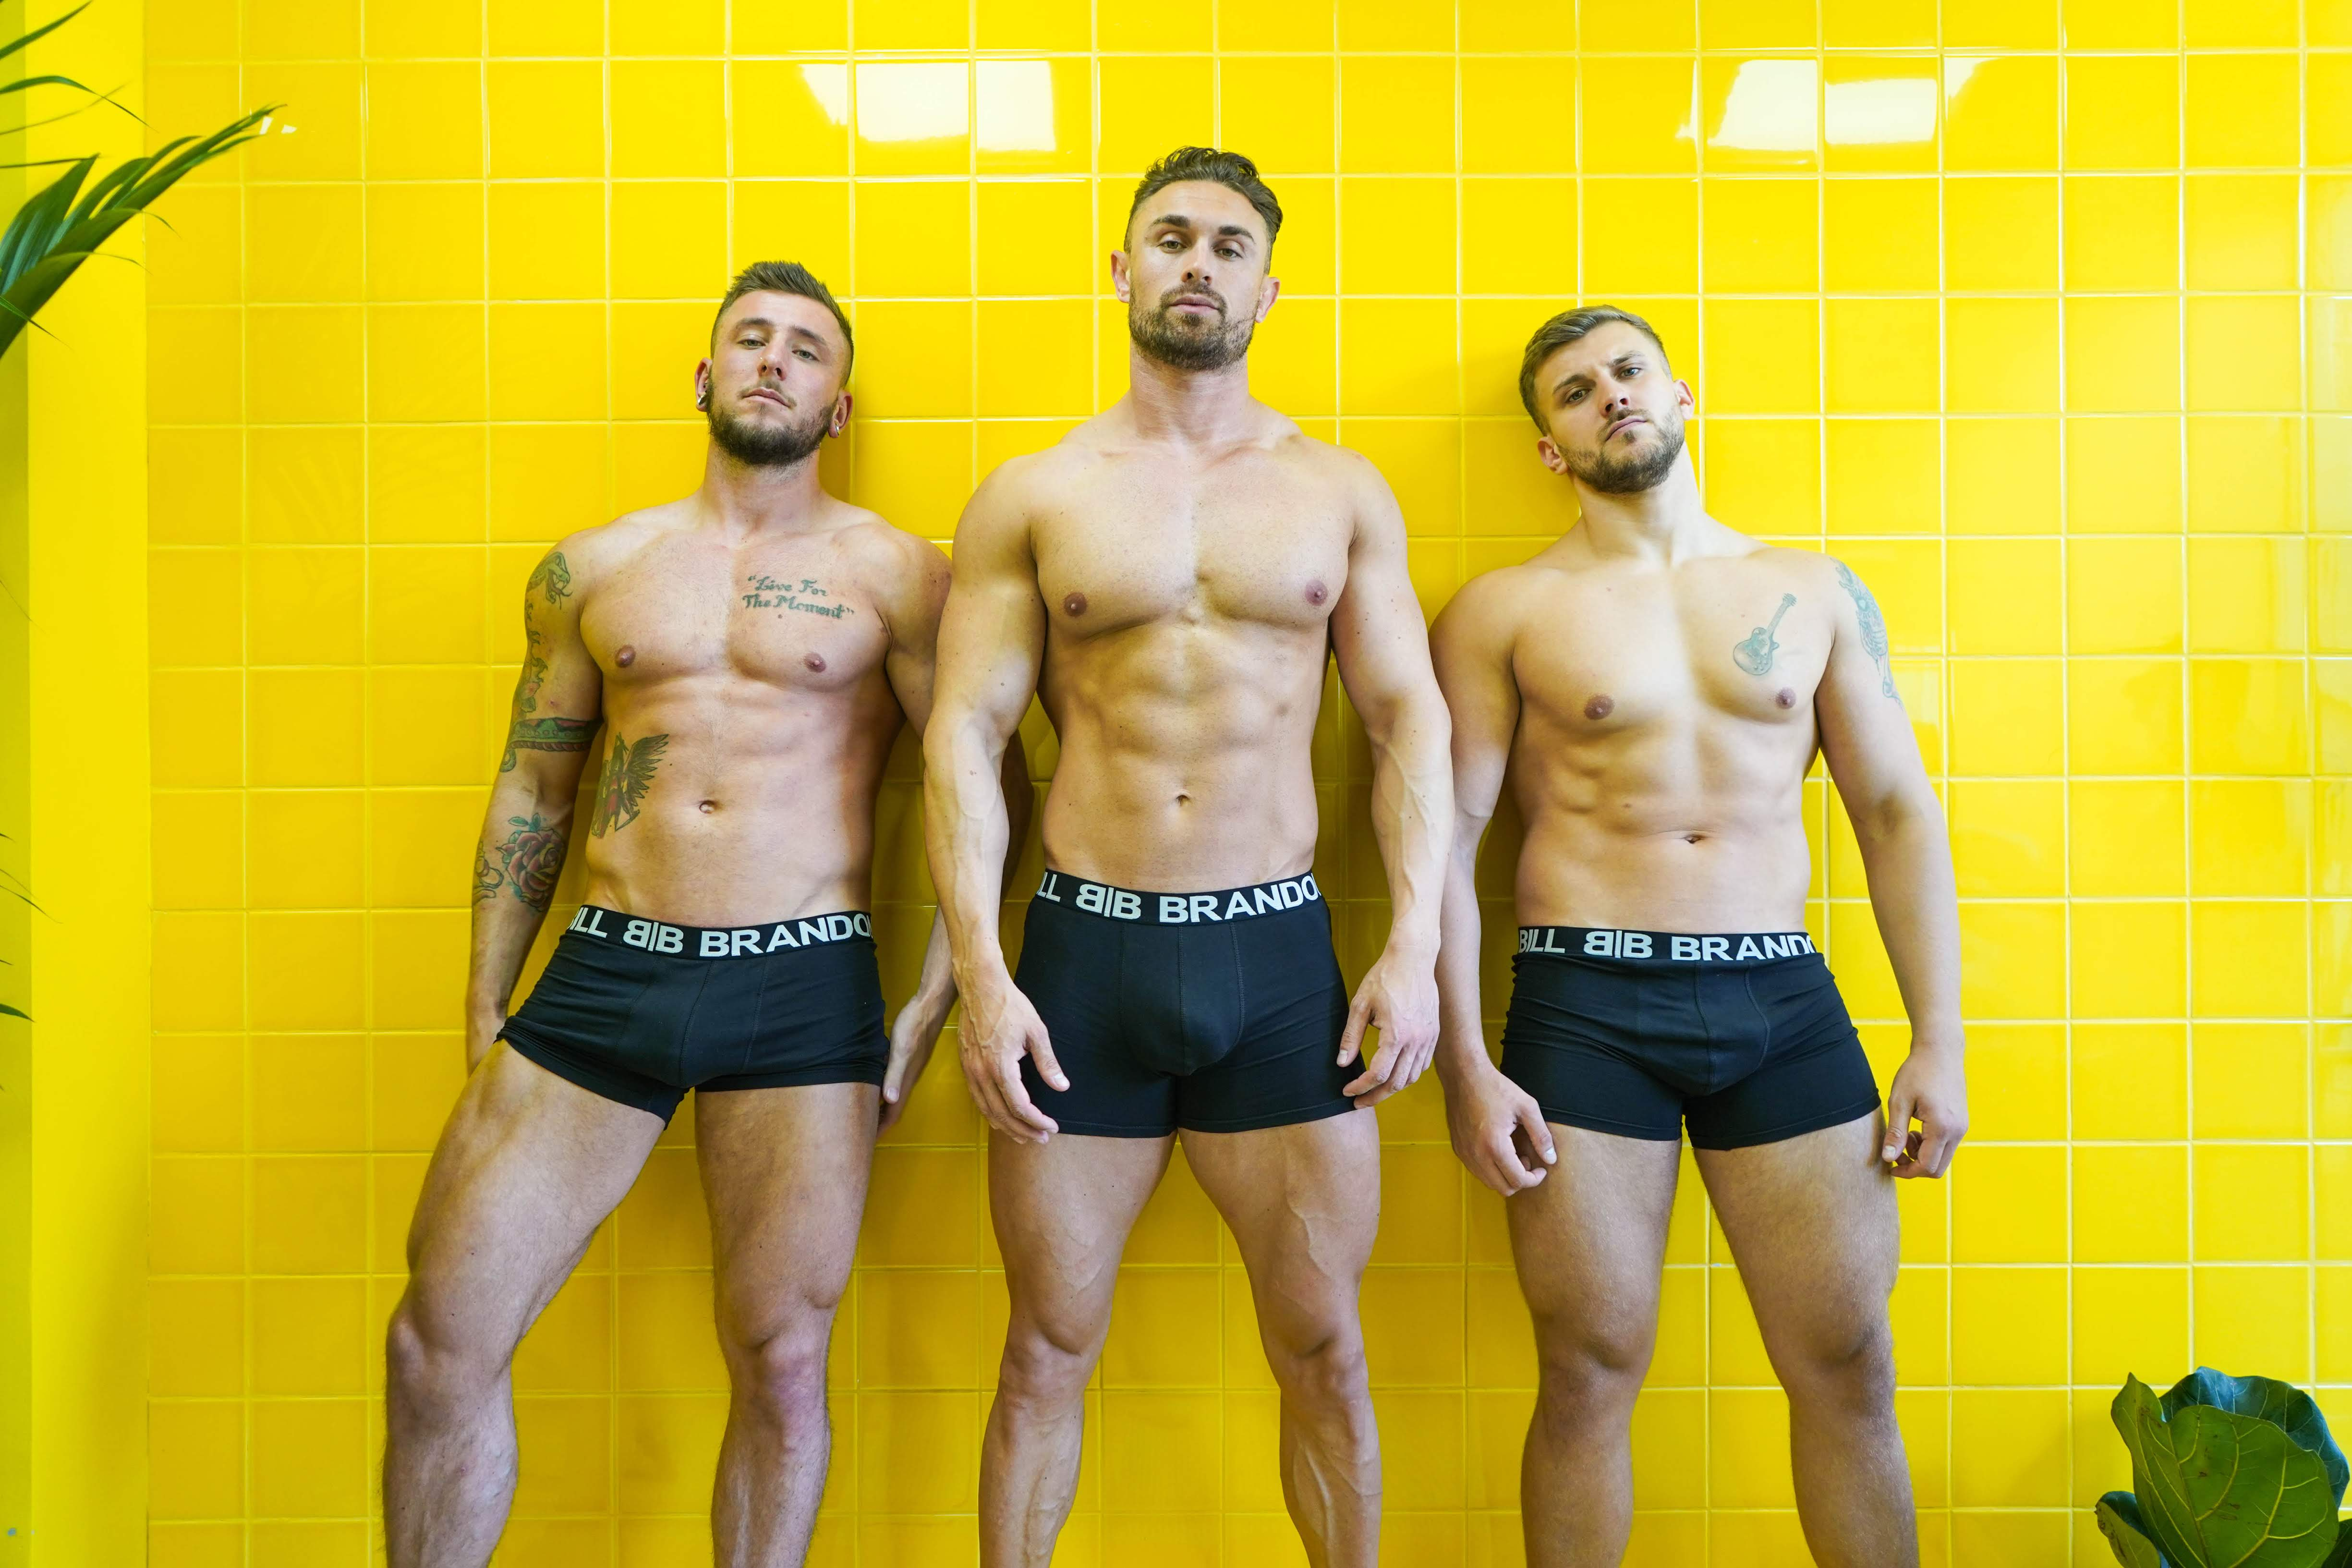 A lifestyle image showing Bill and Brandon Men's underwear - Black boxer trunks.